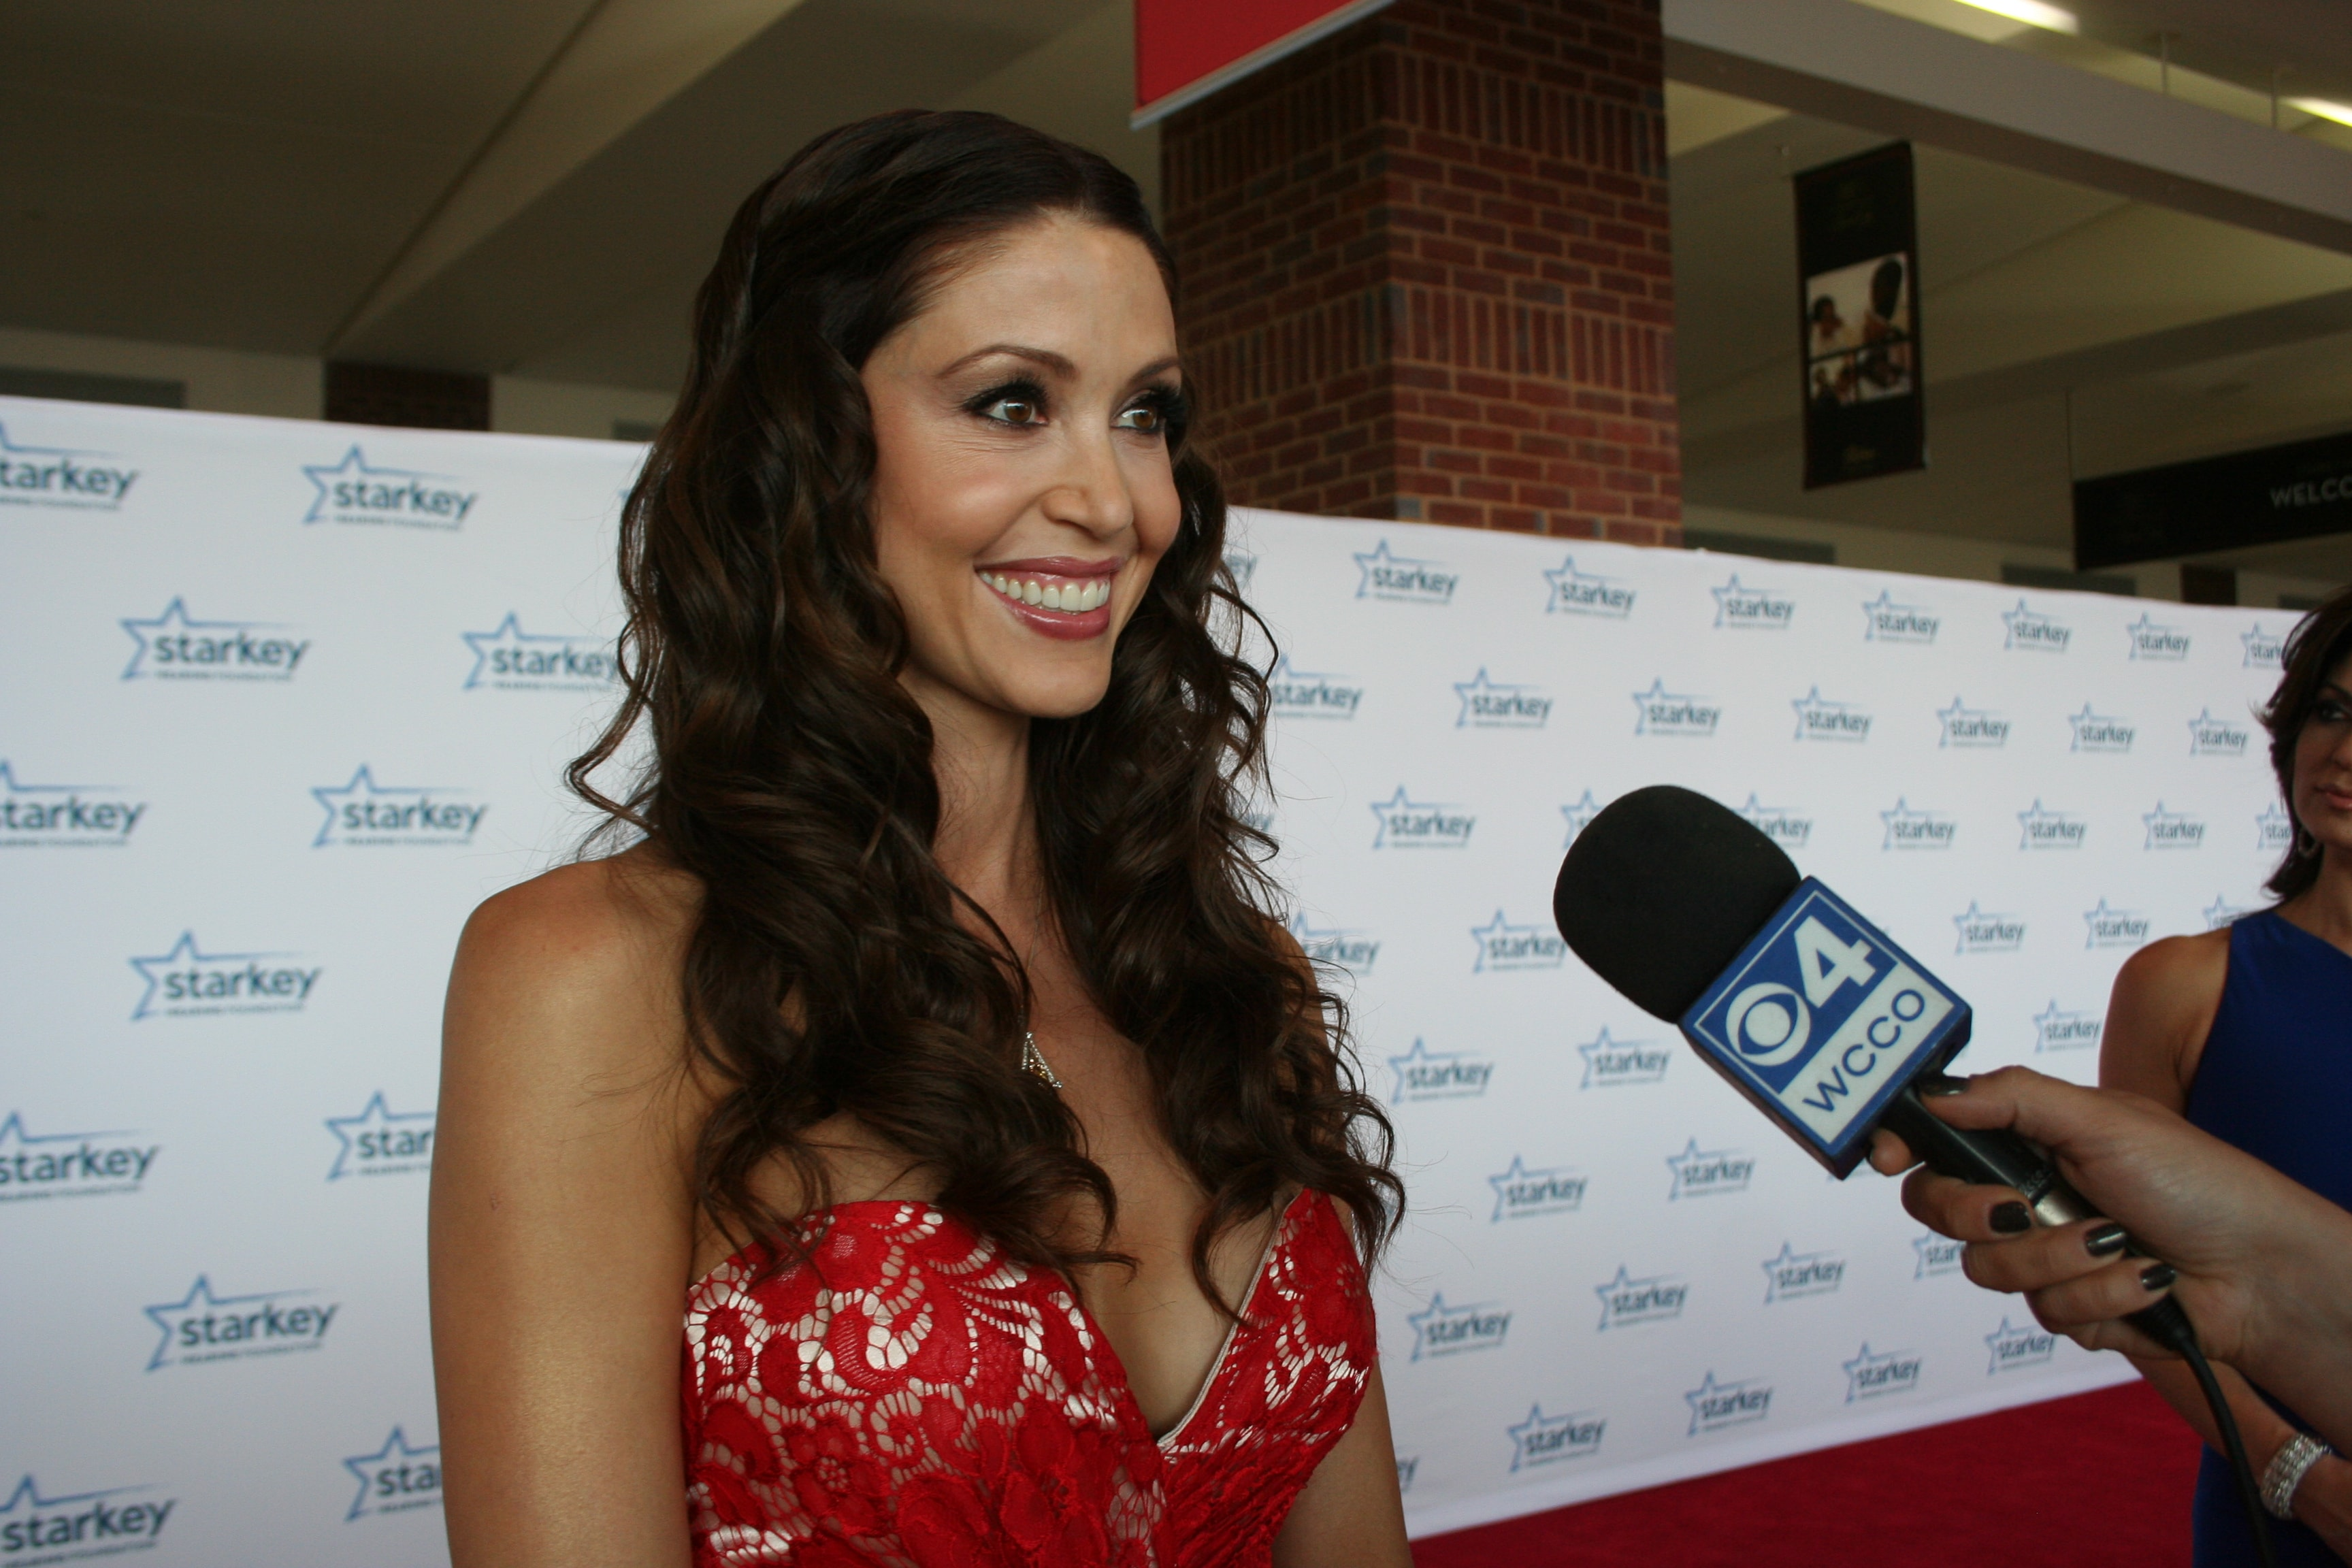 Shannon Elizabeth Full hd wallpapers